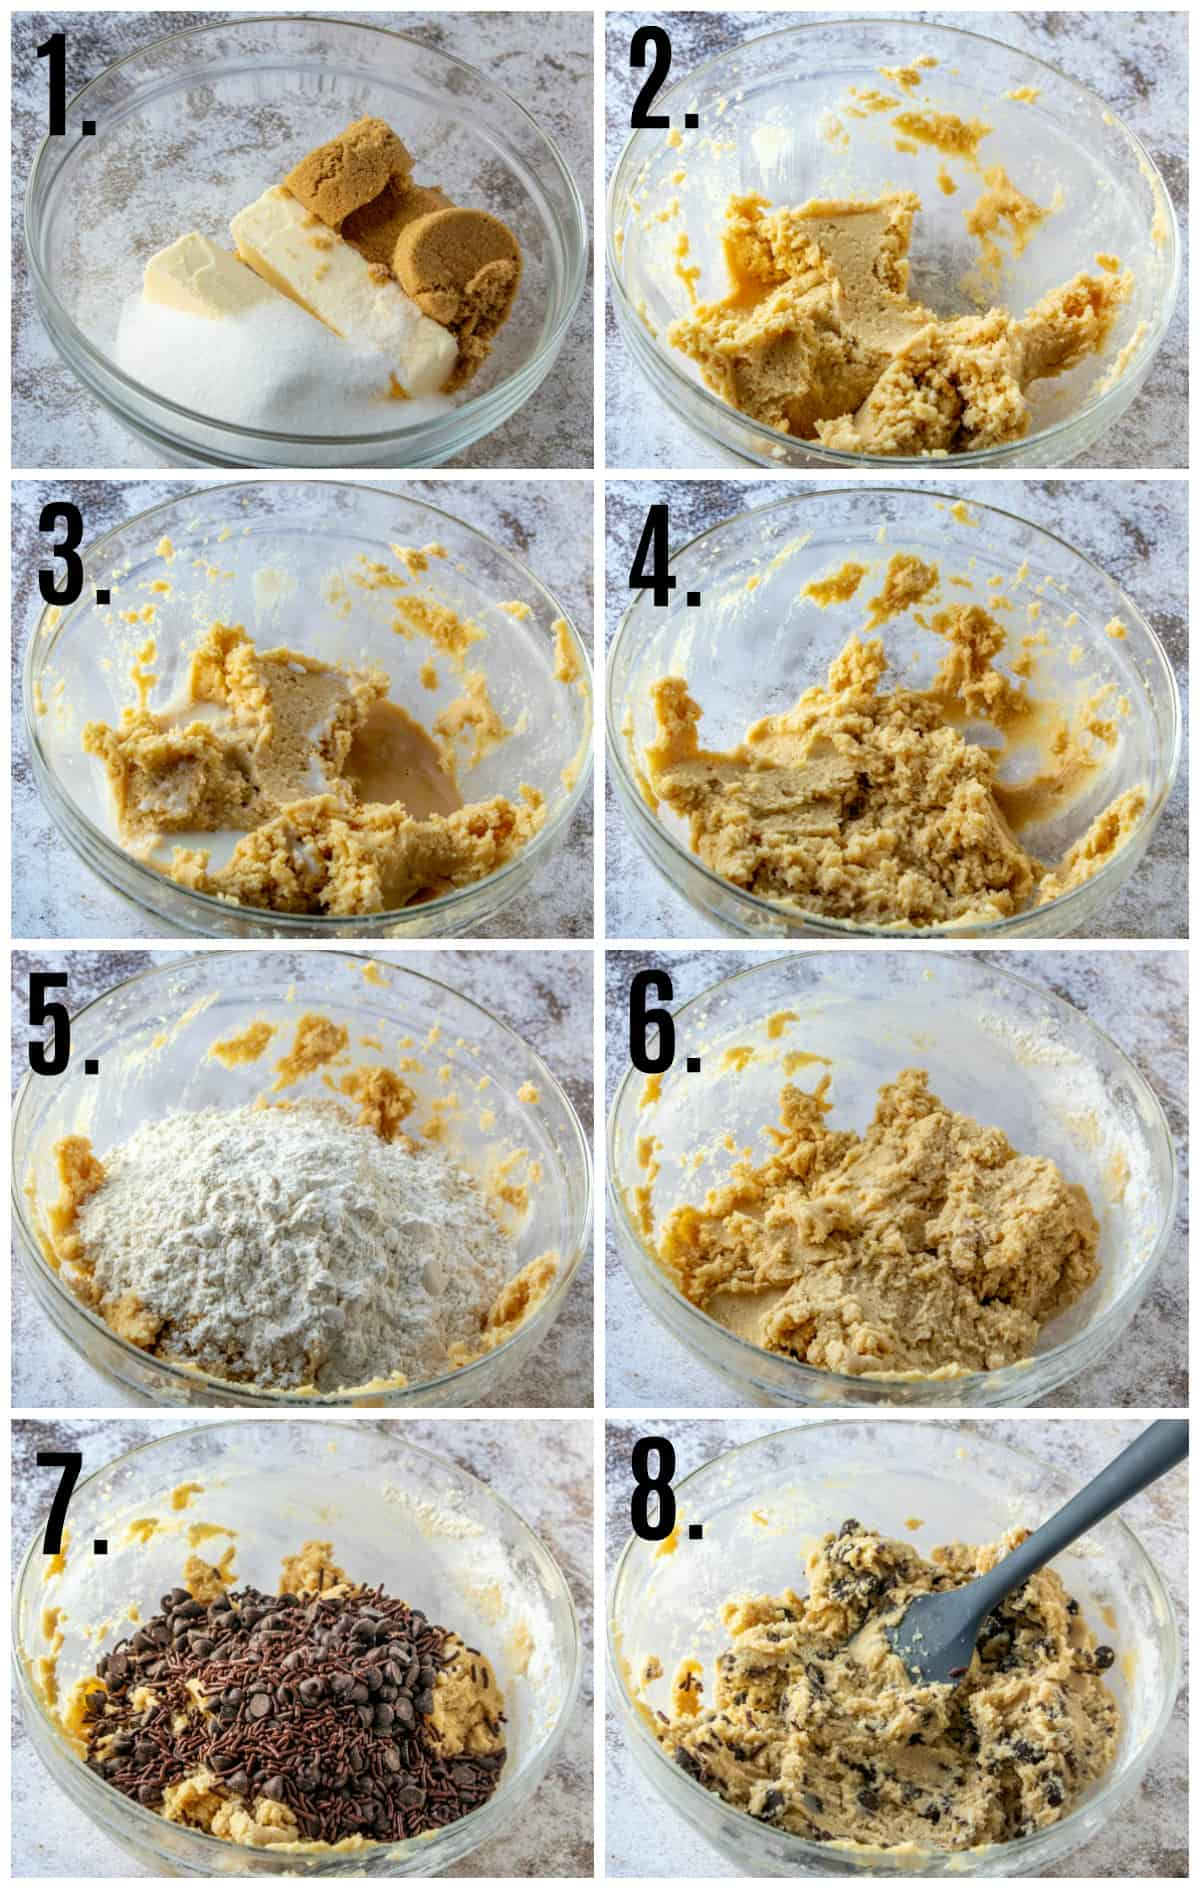 Step by step photos of how to make Chocolate Chip Edible Cookie Dough